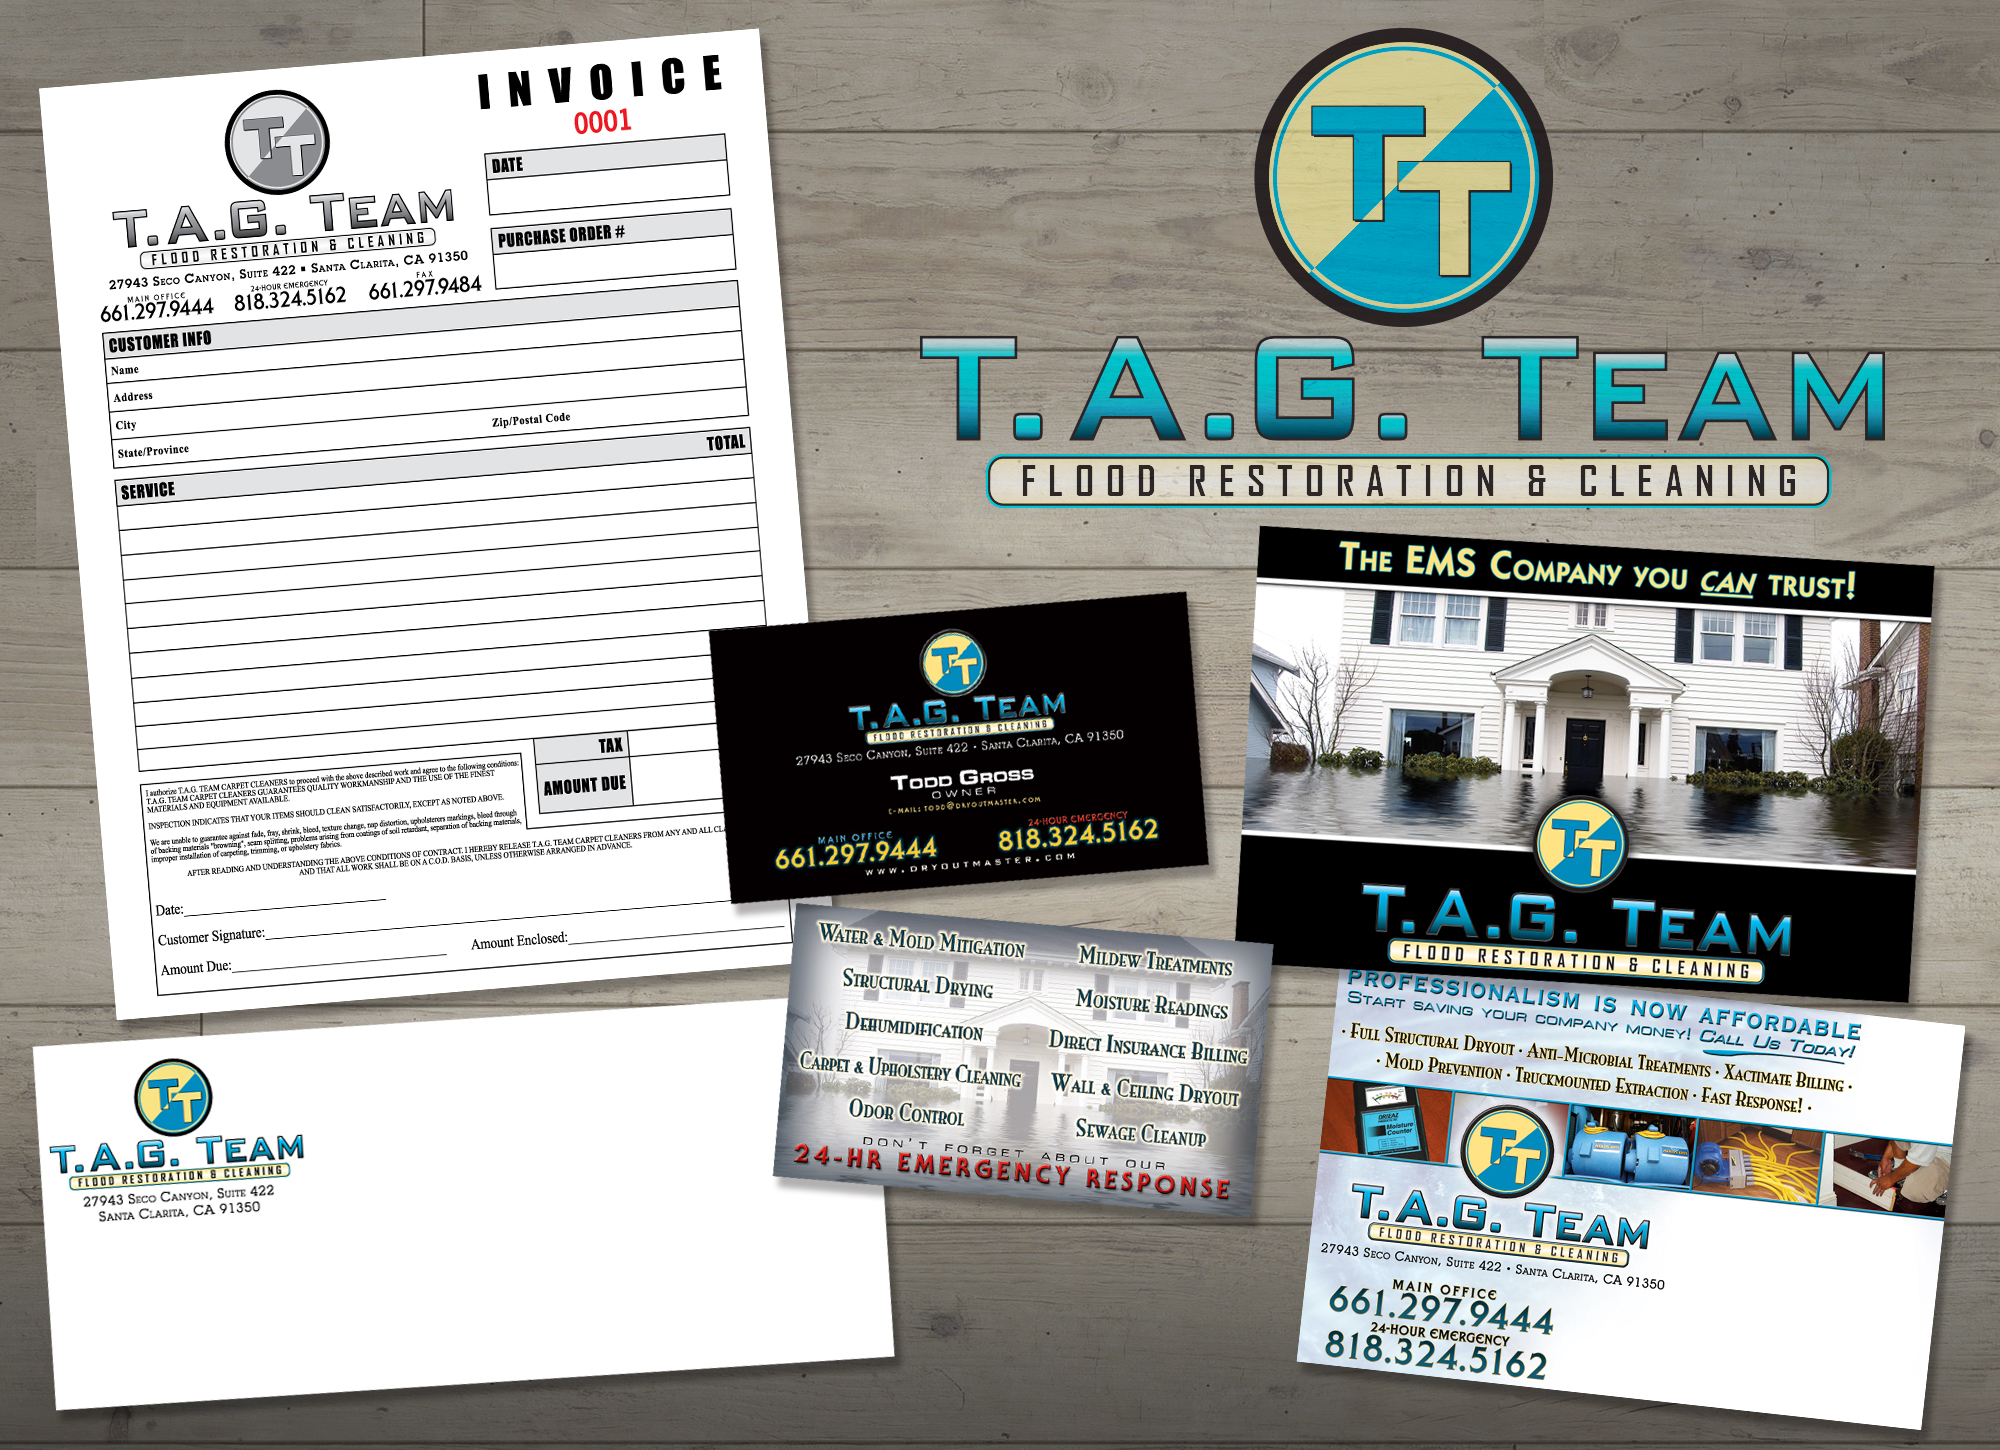 T.A.G. Team Flood Restoration & Cleaning